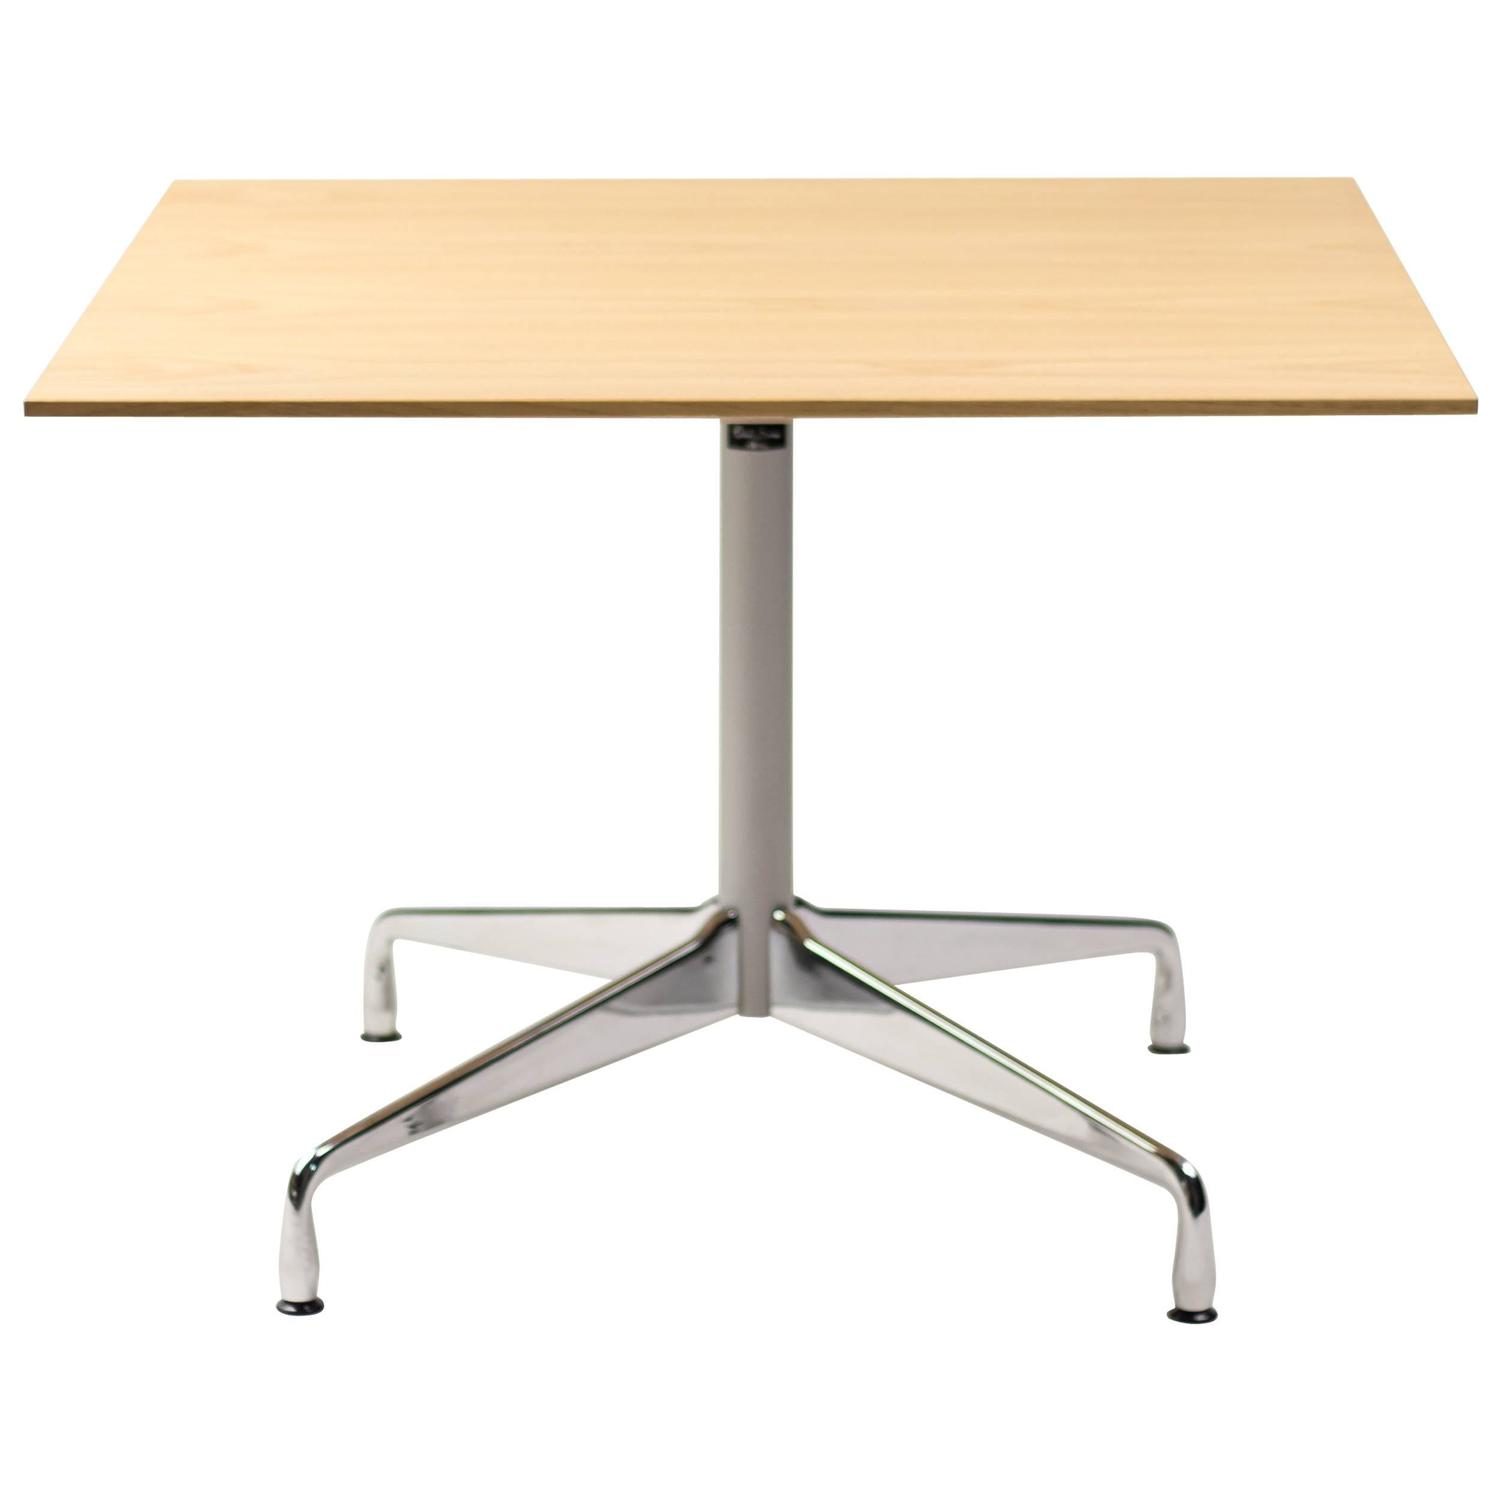 Charles Eames Style Round Glass Top Dining Table  : 7508473z from table.celetania.com size 1500 x 1500 jpeg 40kB